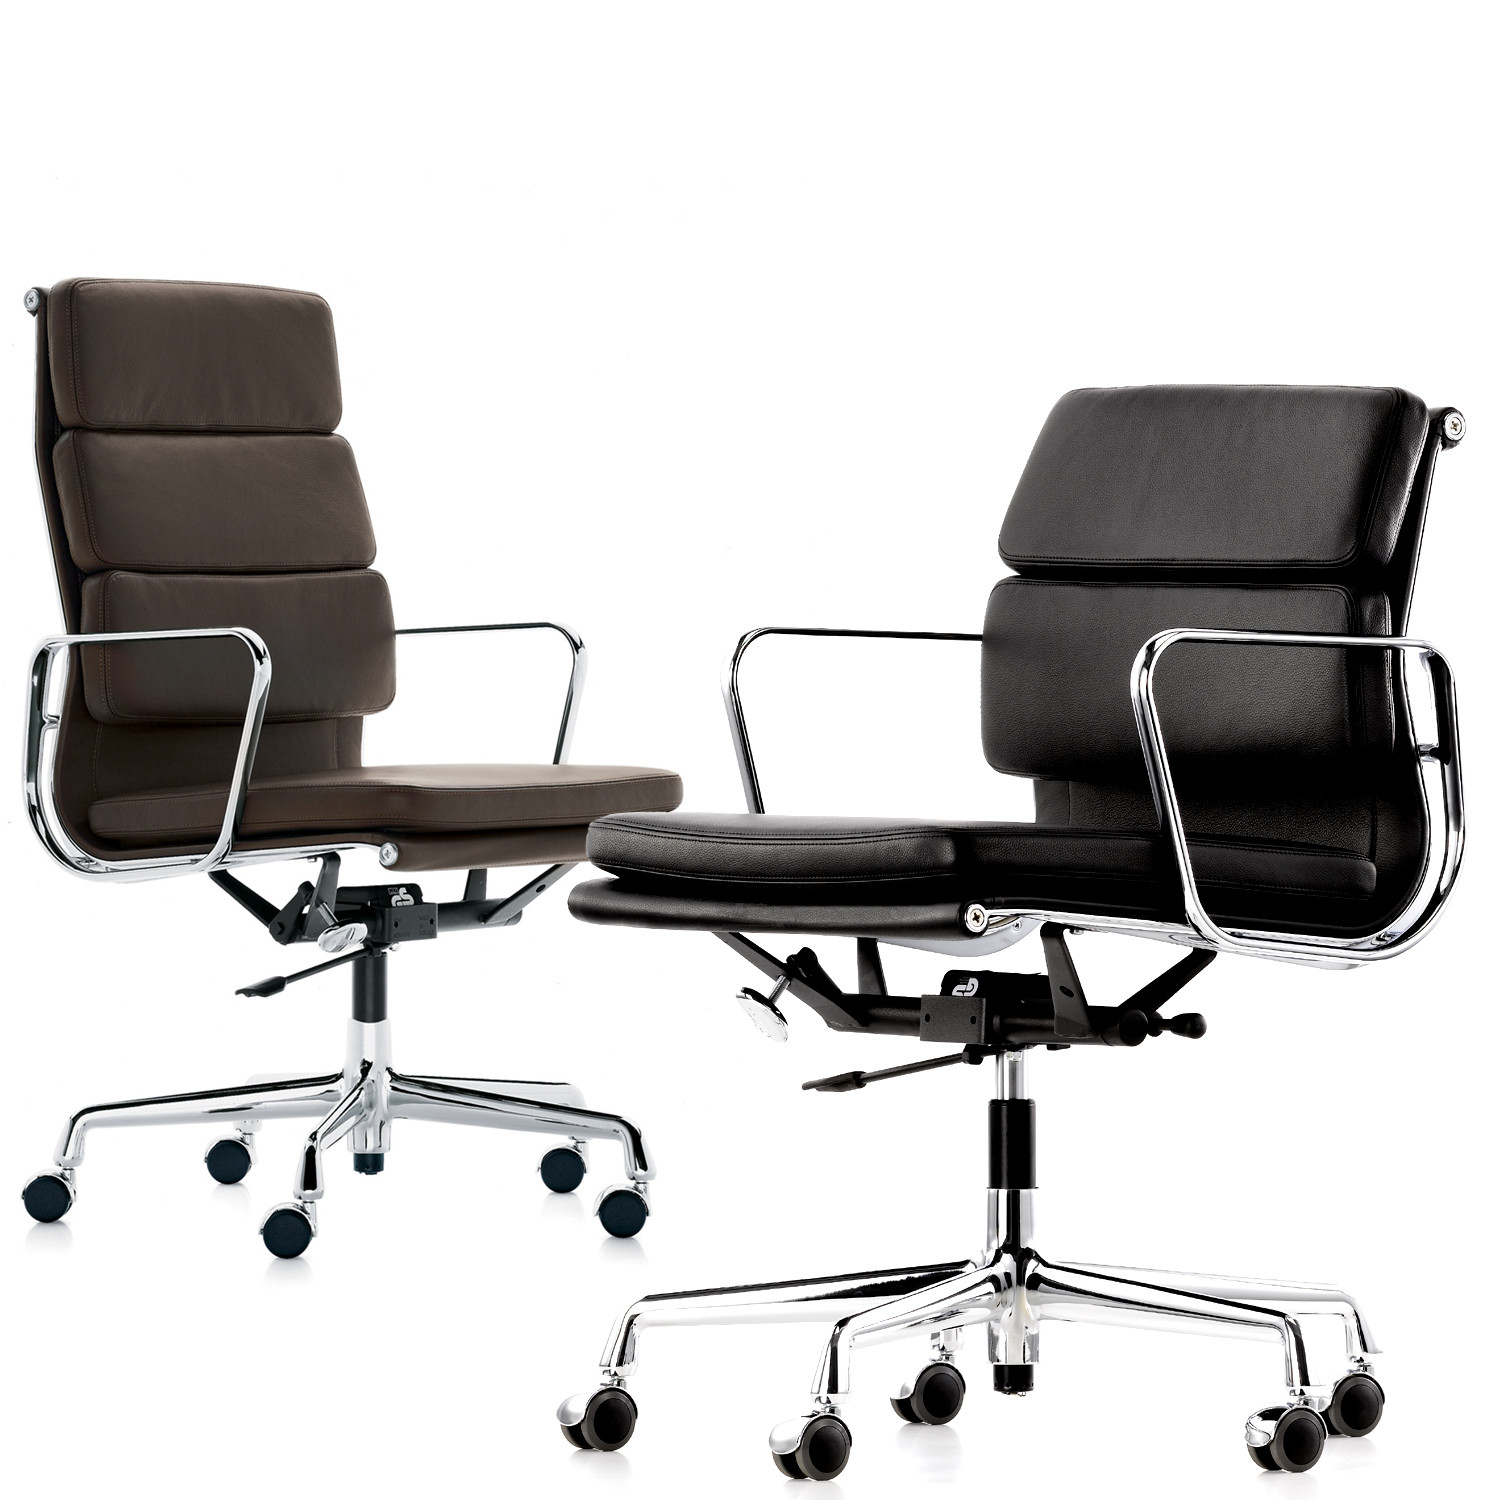 Soft Pad Task Chairs EA219 and EA217